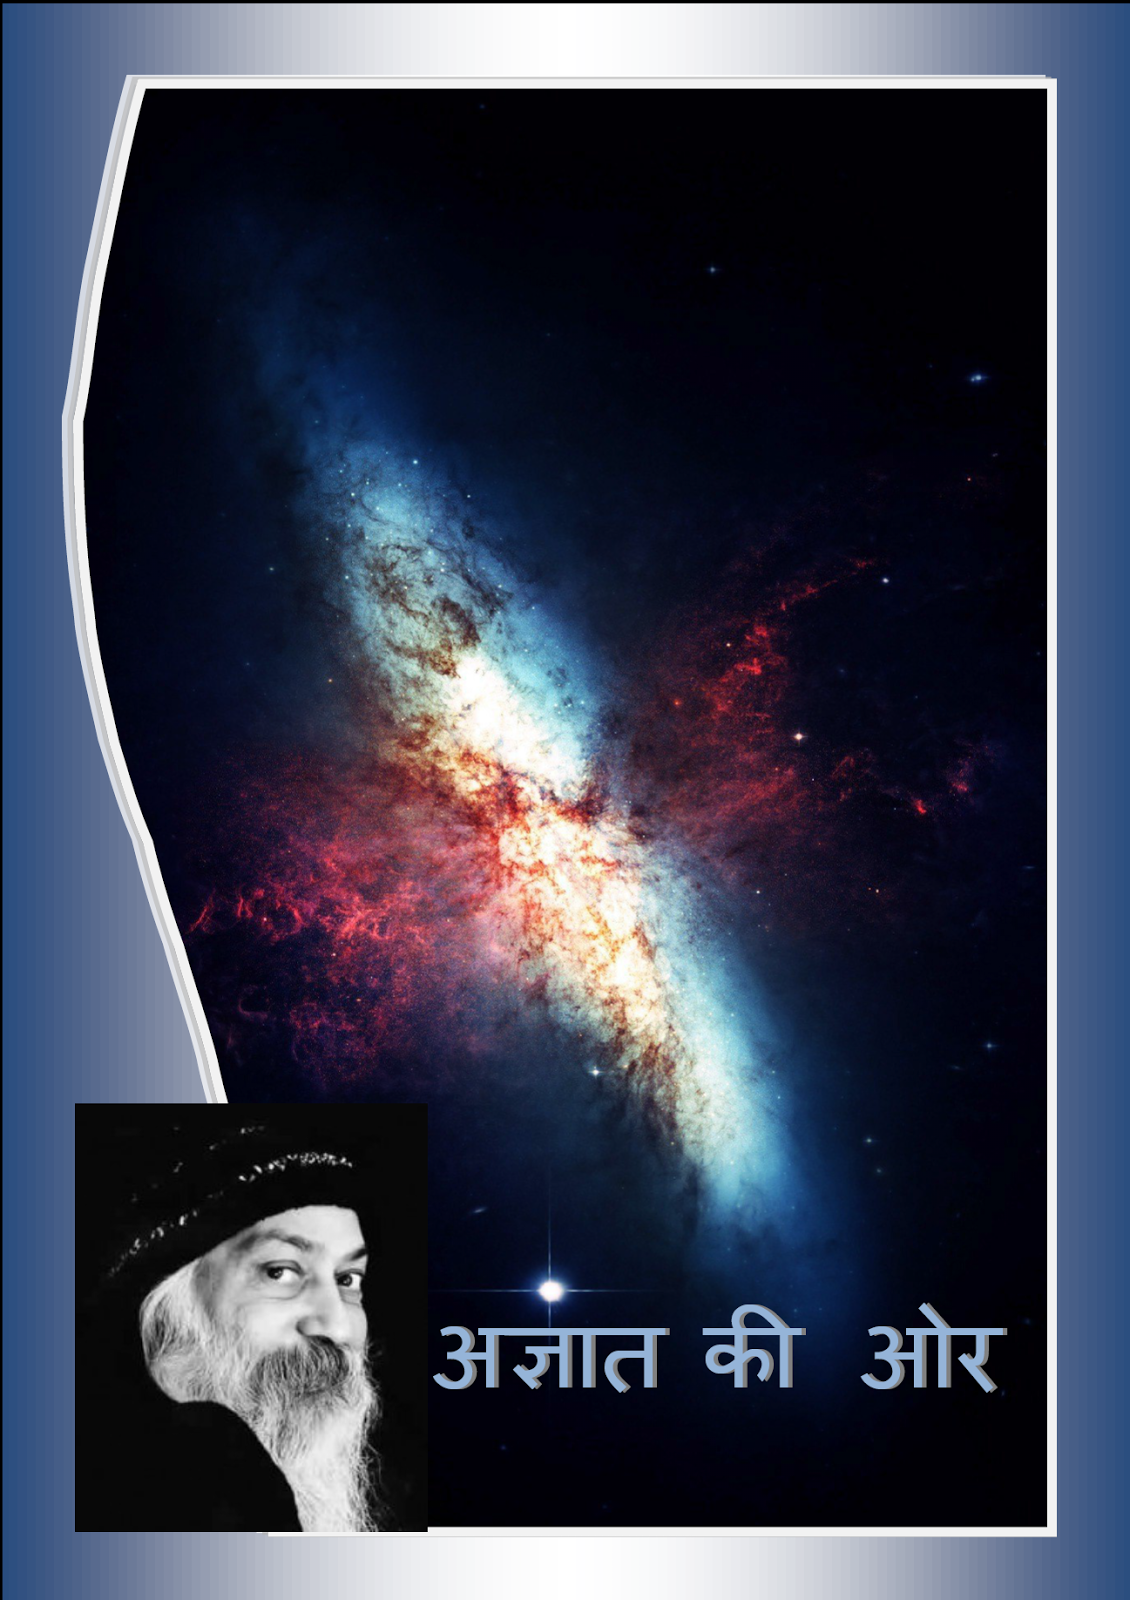 Book of Osho - Agyat Ki Aur